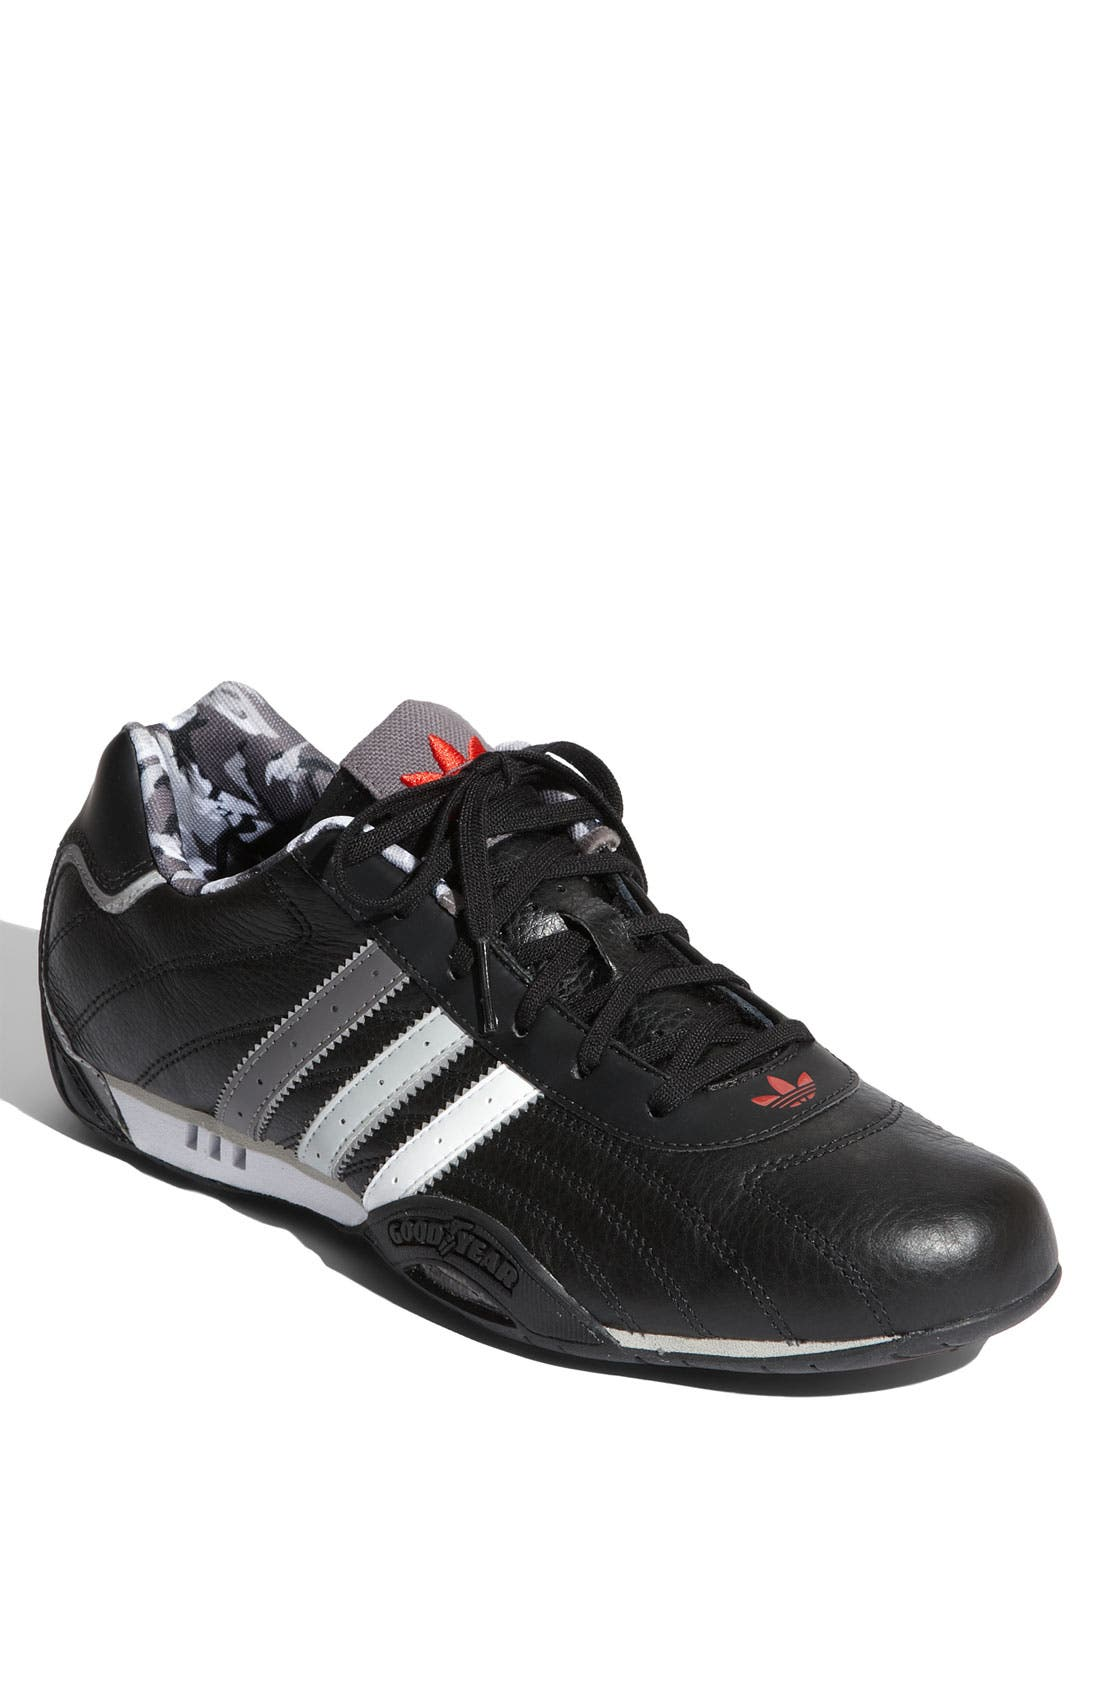 'Adi Racer Lo' Driving Shoe,                             Main thumbnail 1, color,                             001